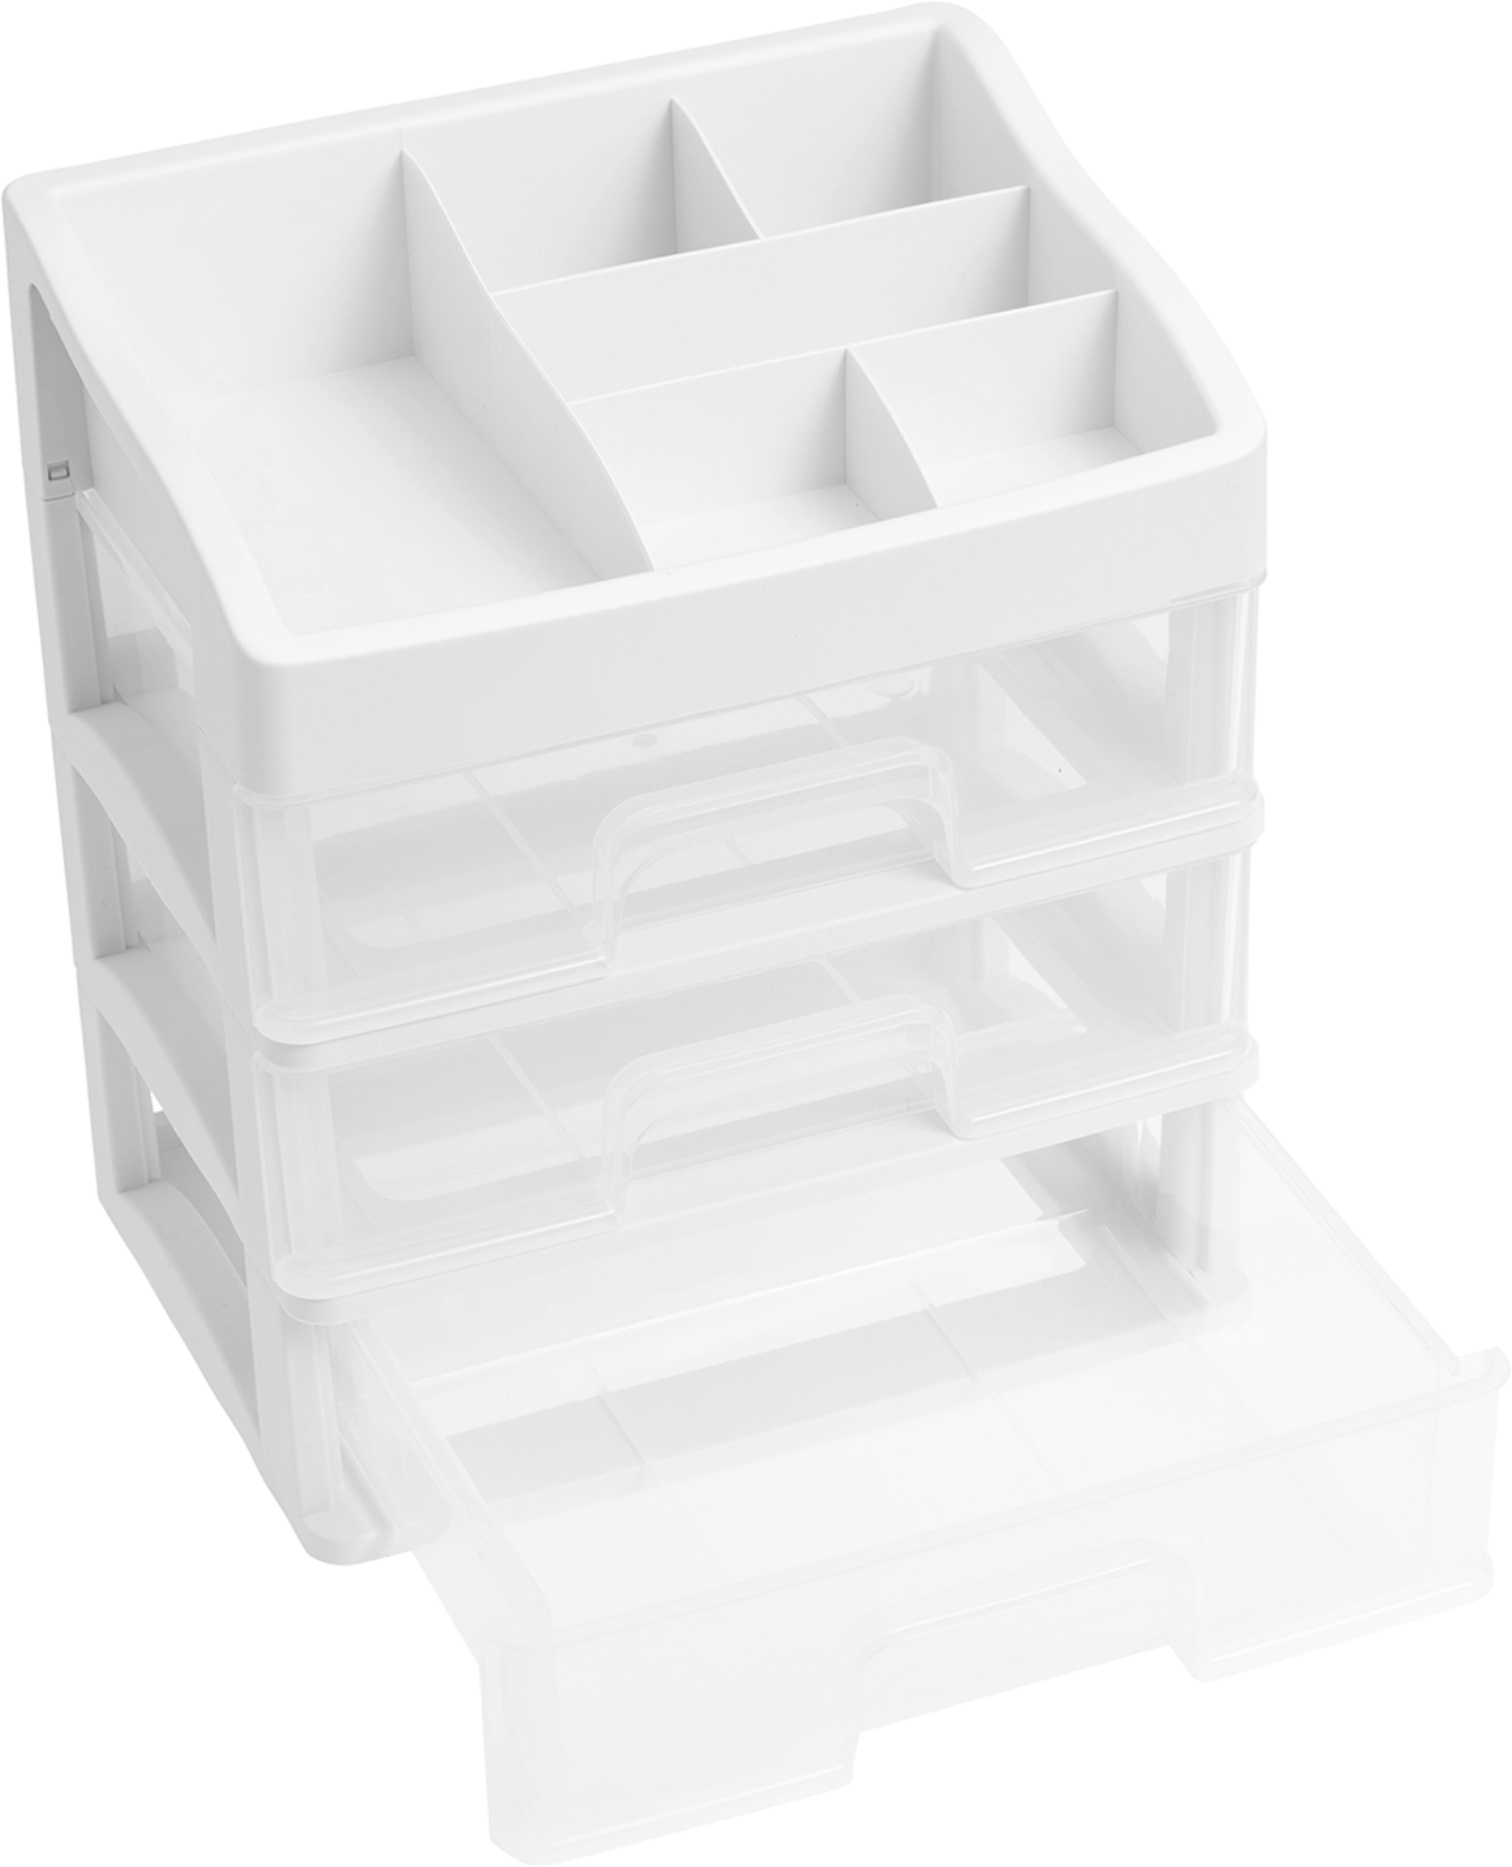 We R 3-Drawer Plastic Storage-11X8X12.5 Case